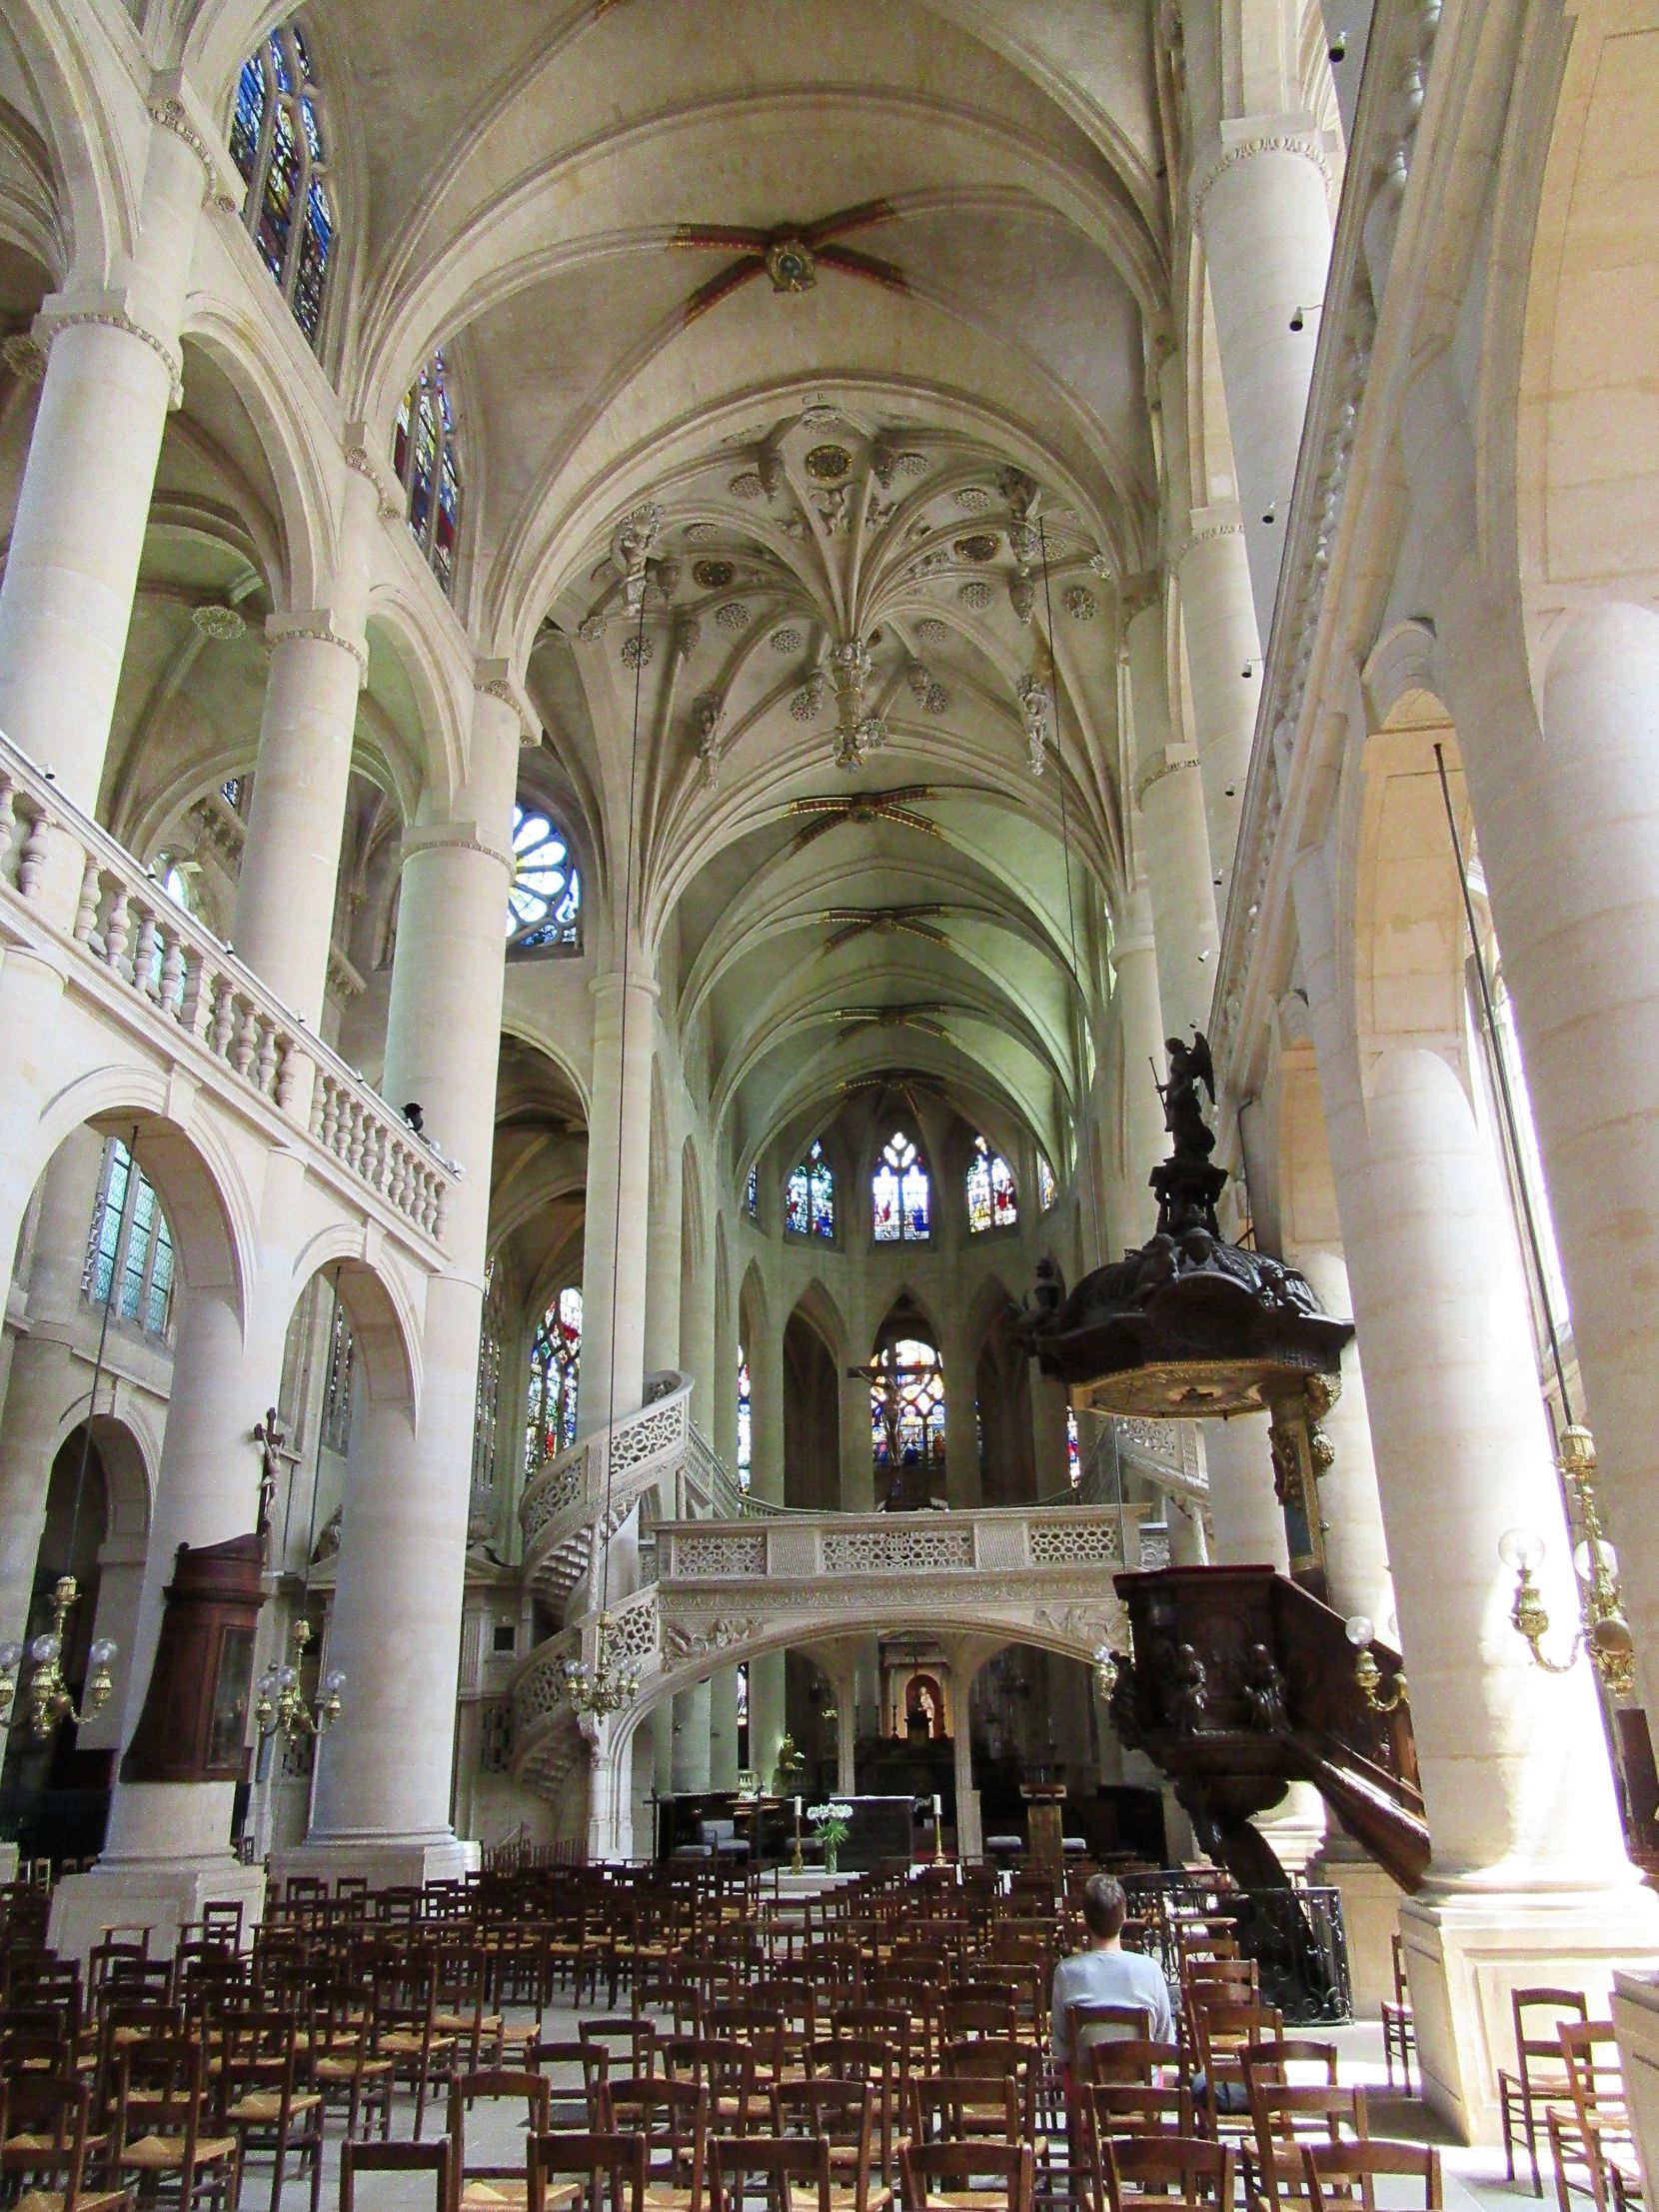 The Church of St. Etienne-du-Mont in Paris, where Maurice Duruflé and his wife Marie-Madeleine Duruflé-Chevalier were co-organists.